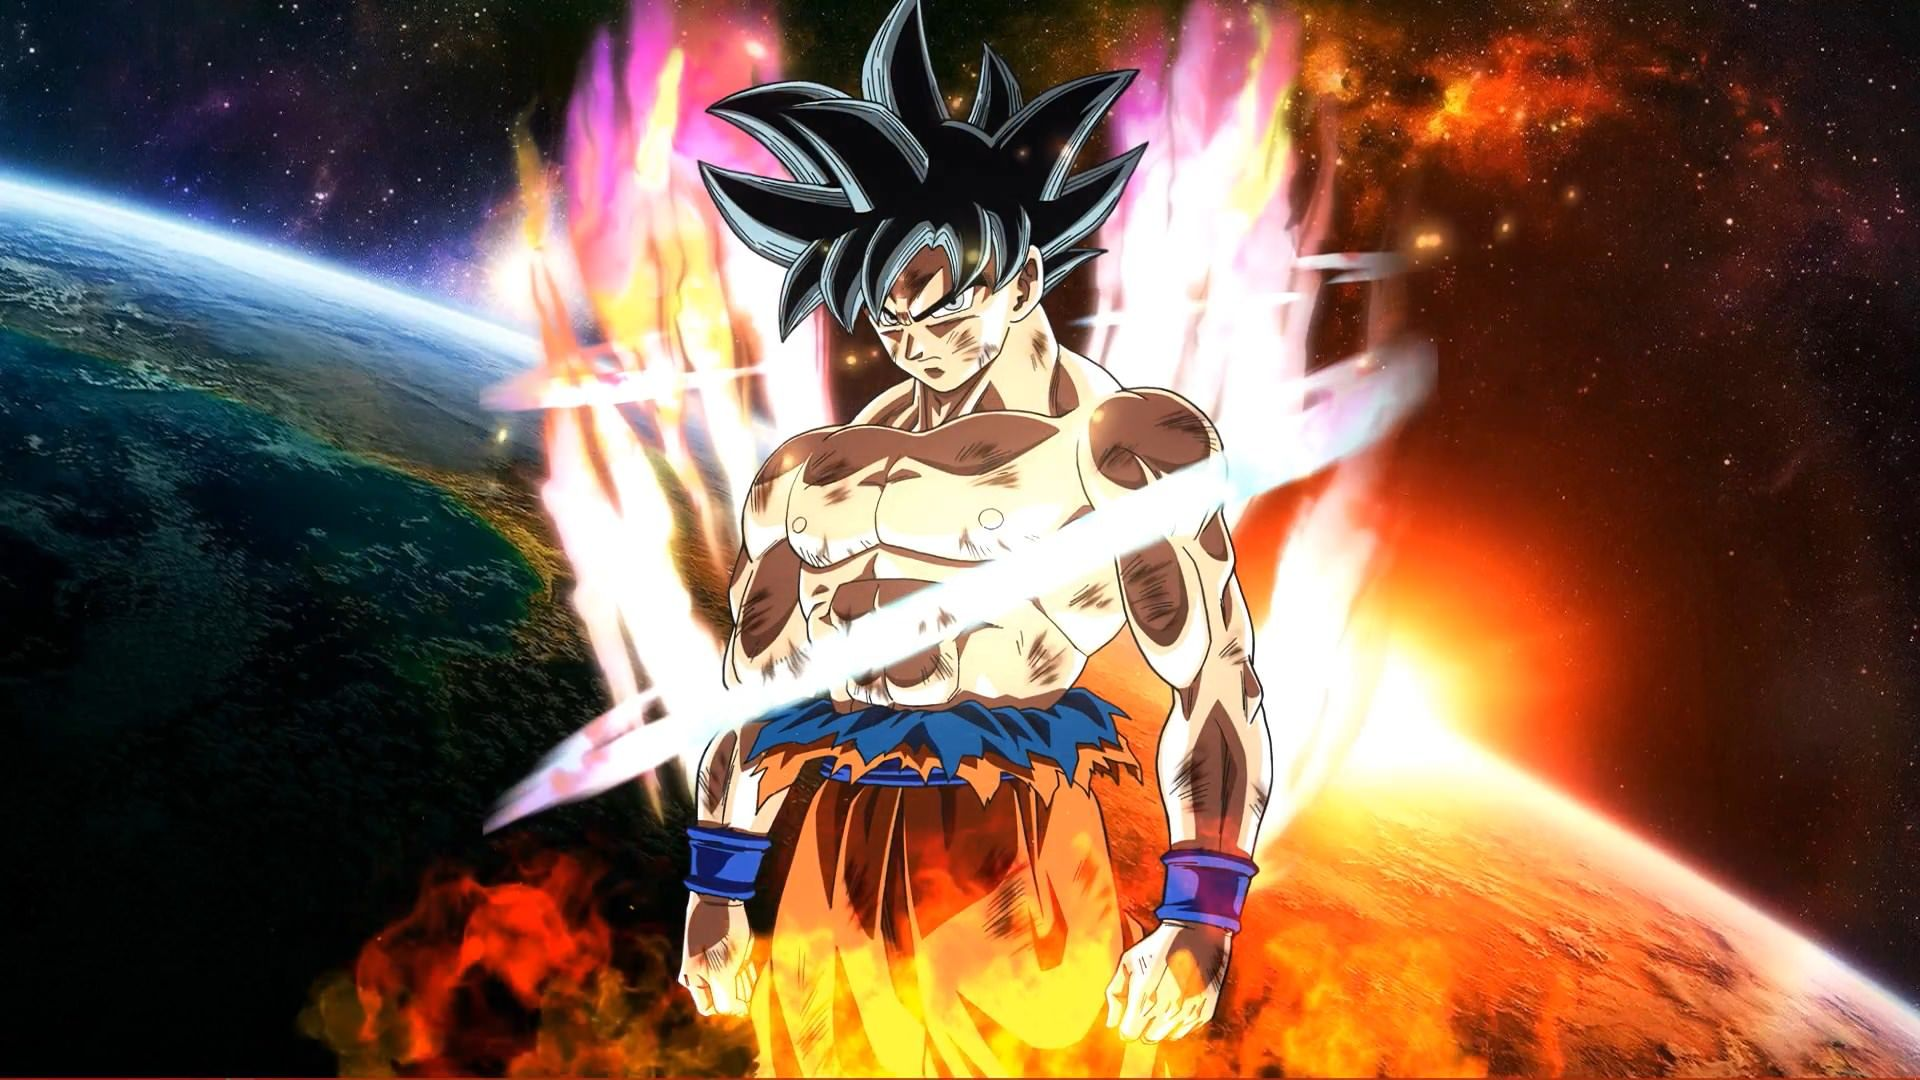 Ultra Instinct Goku Hd Posted By Ryan Simpson